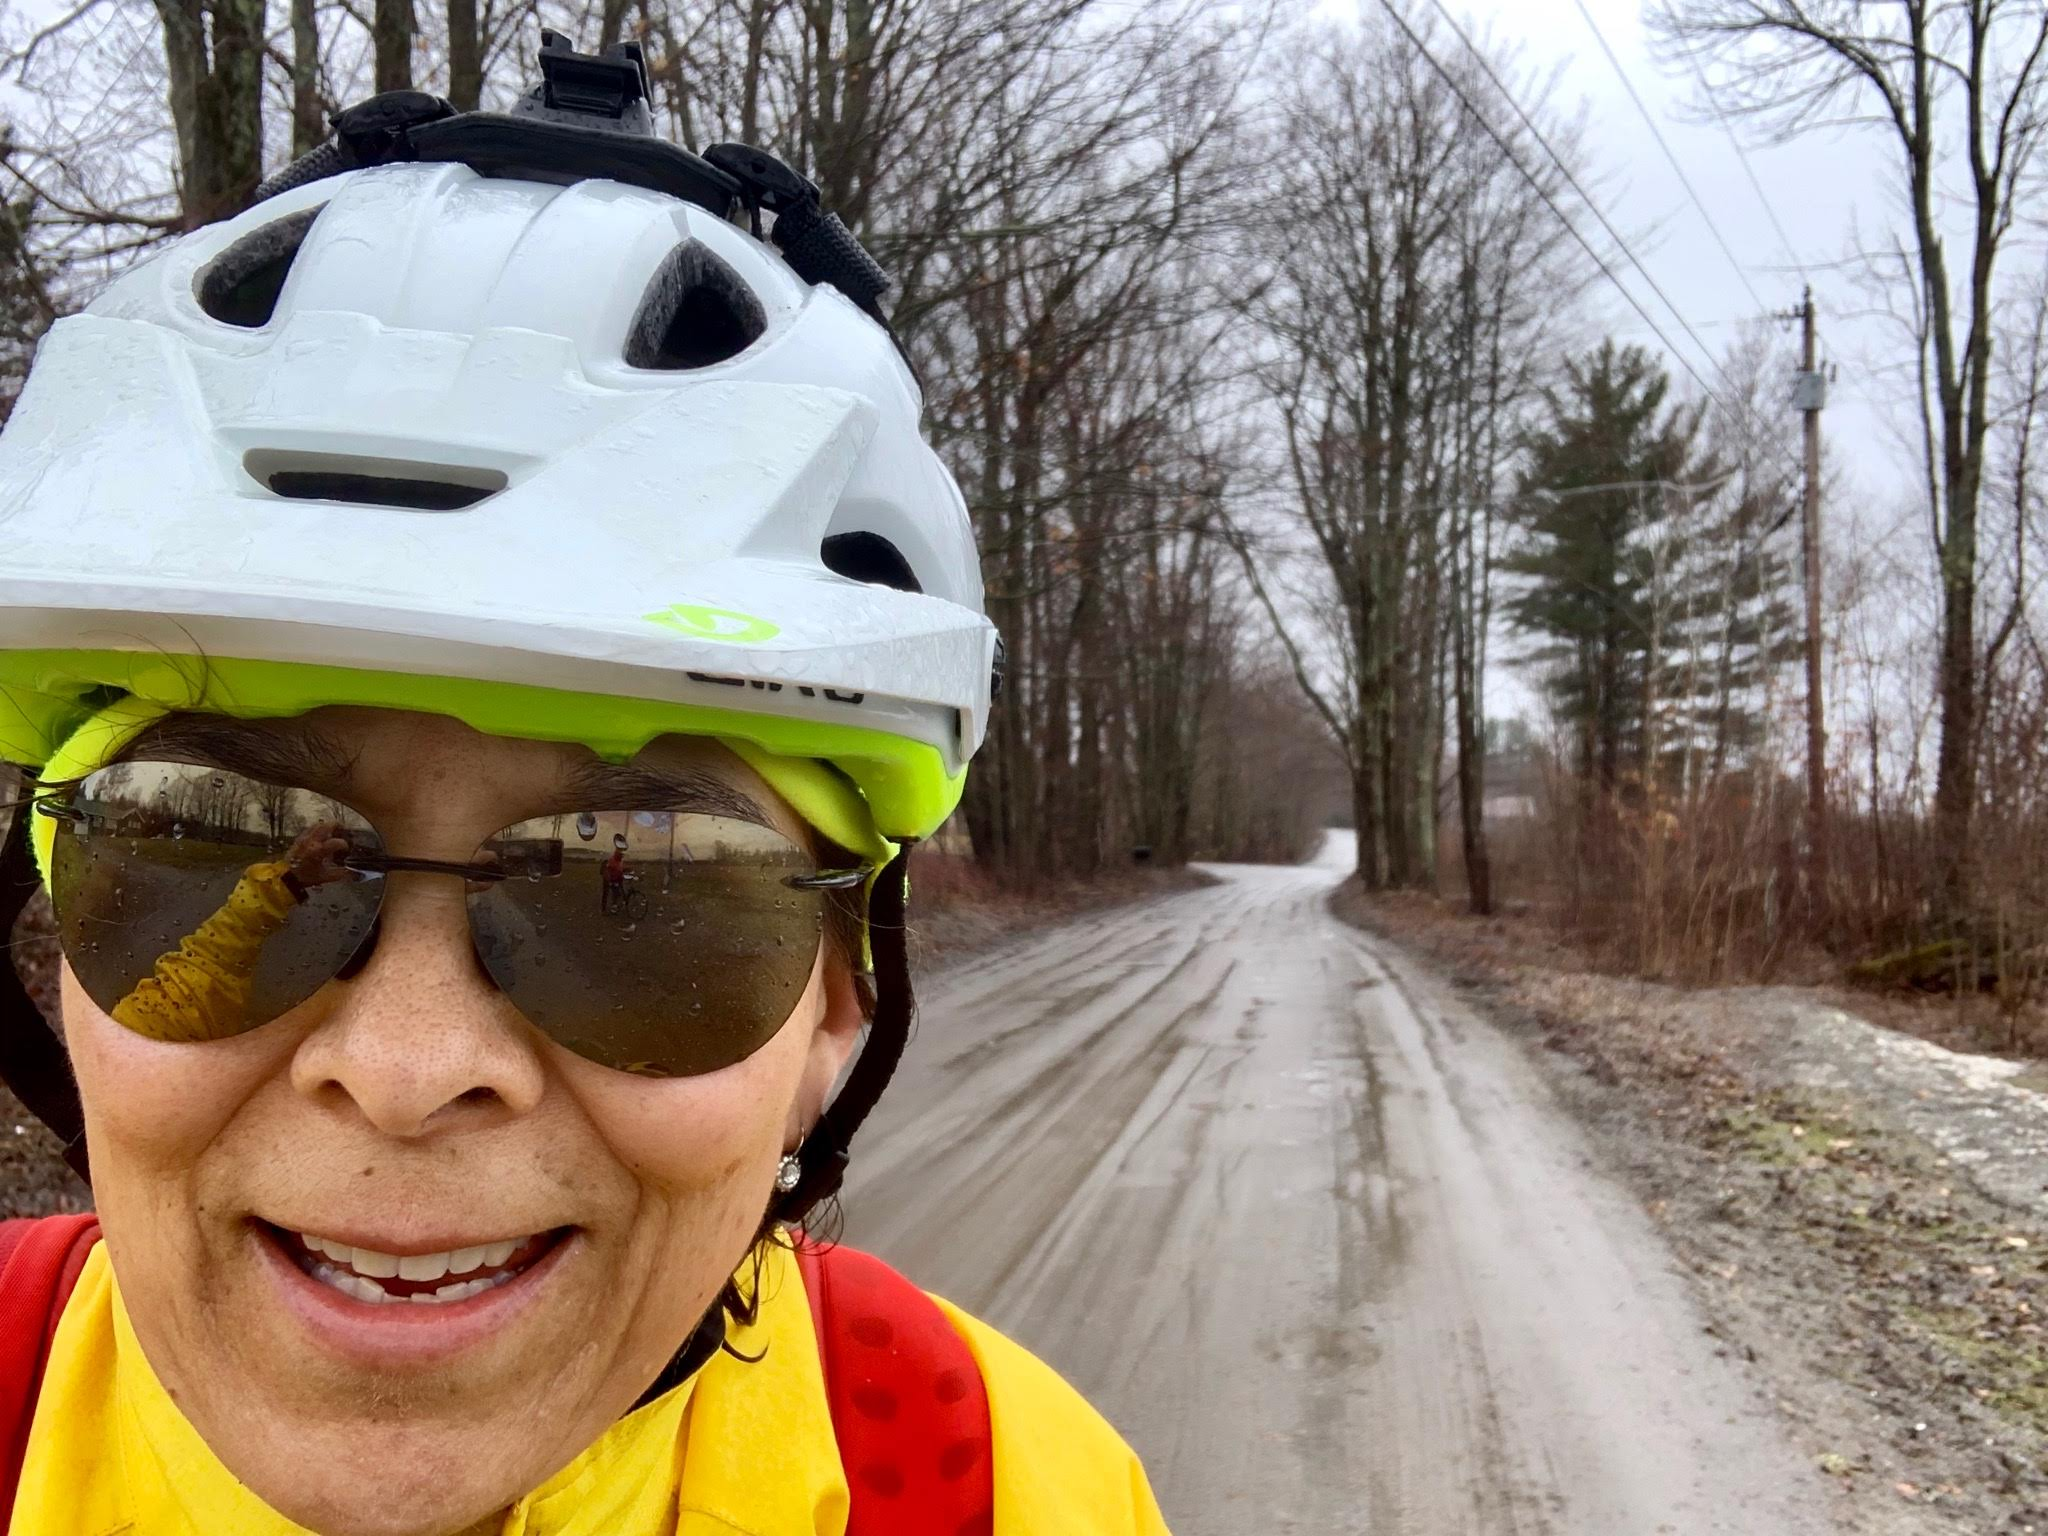 My friend, Janet Moore, in her first ever Gravel Grinder, Muddy Onion Spring Classic 2019. Yes folks, she's having fun in this picture.